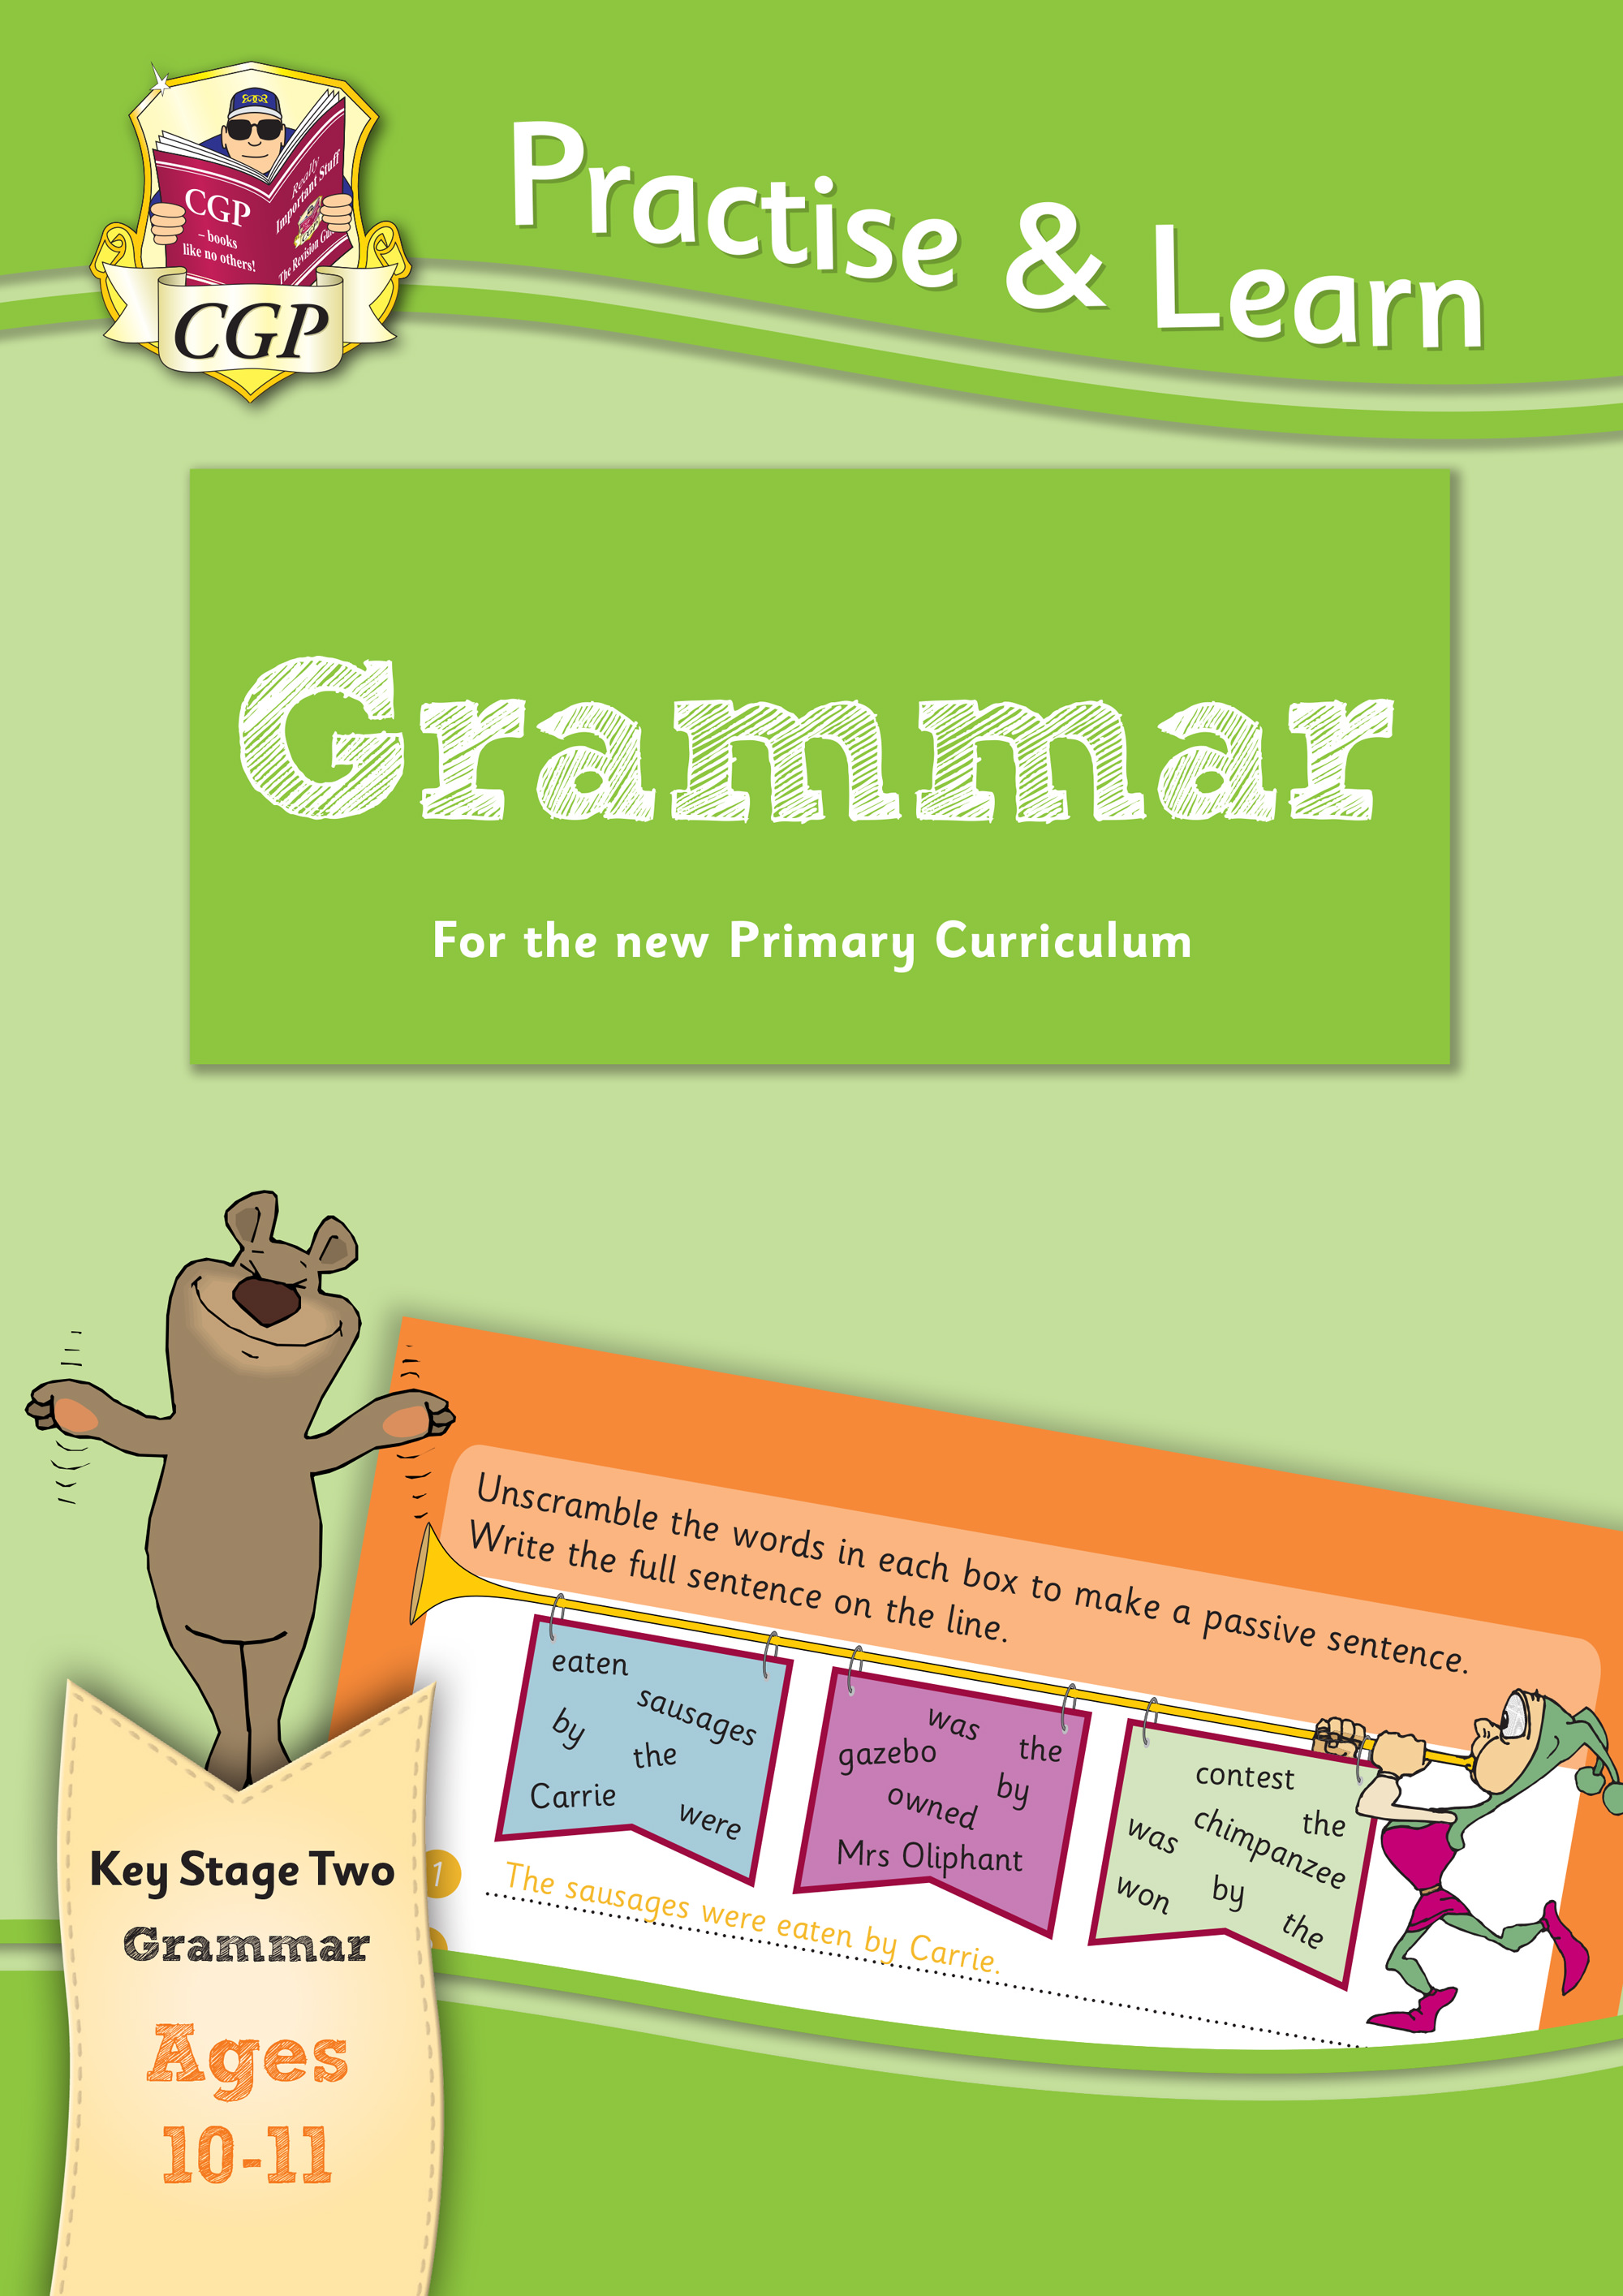 EP6G22 - Curriculum Practise & Learn: Grammar for Ages 10-11